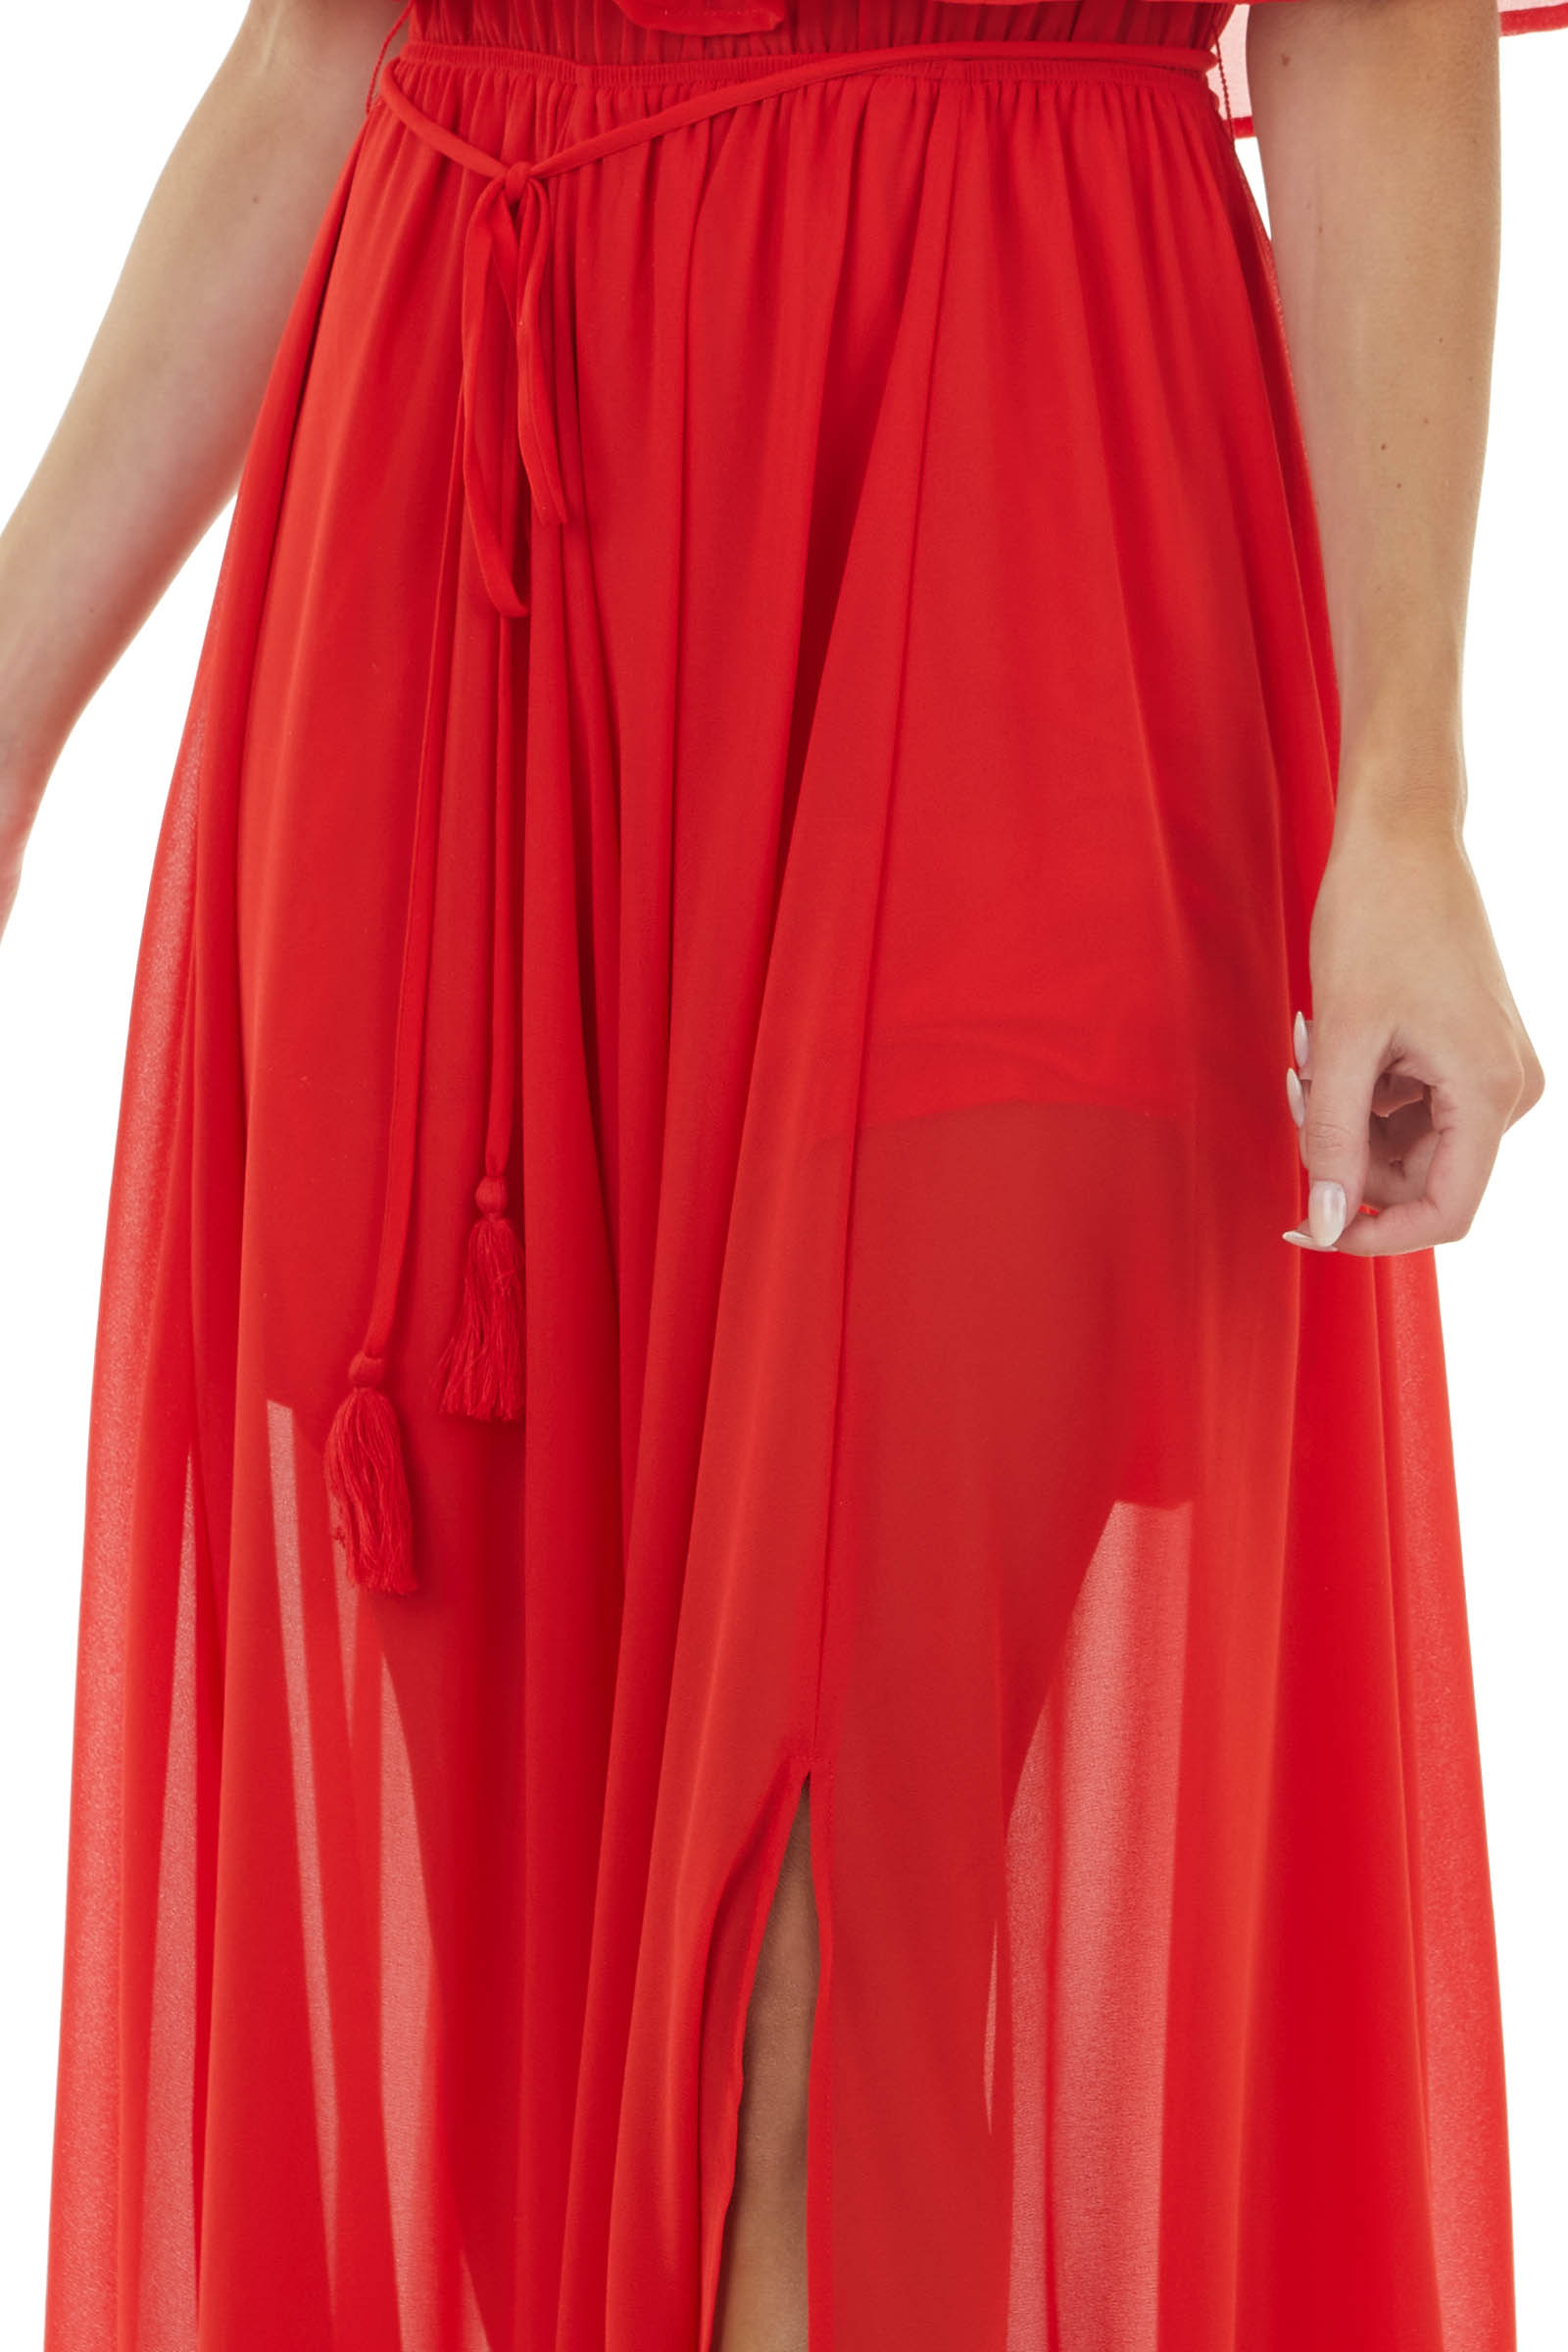 Lipstick Red Off the Shoulder Maxi Dress with Waist Tie